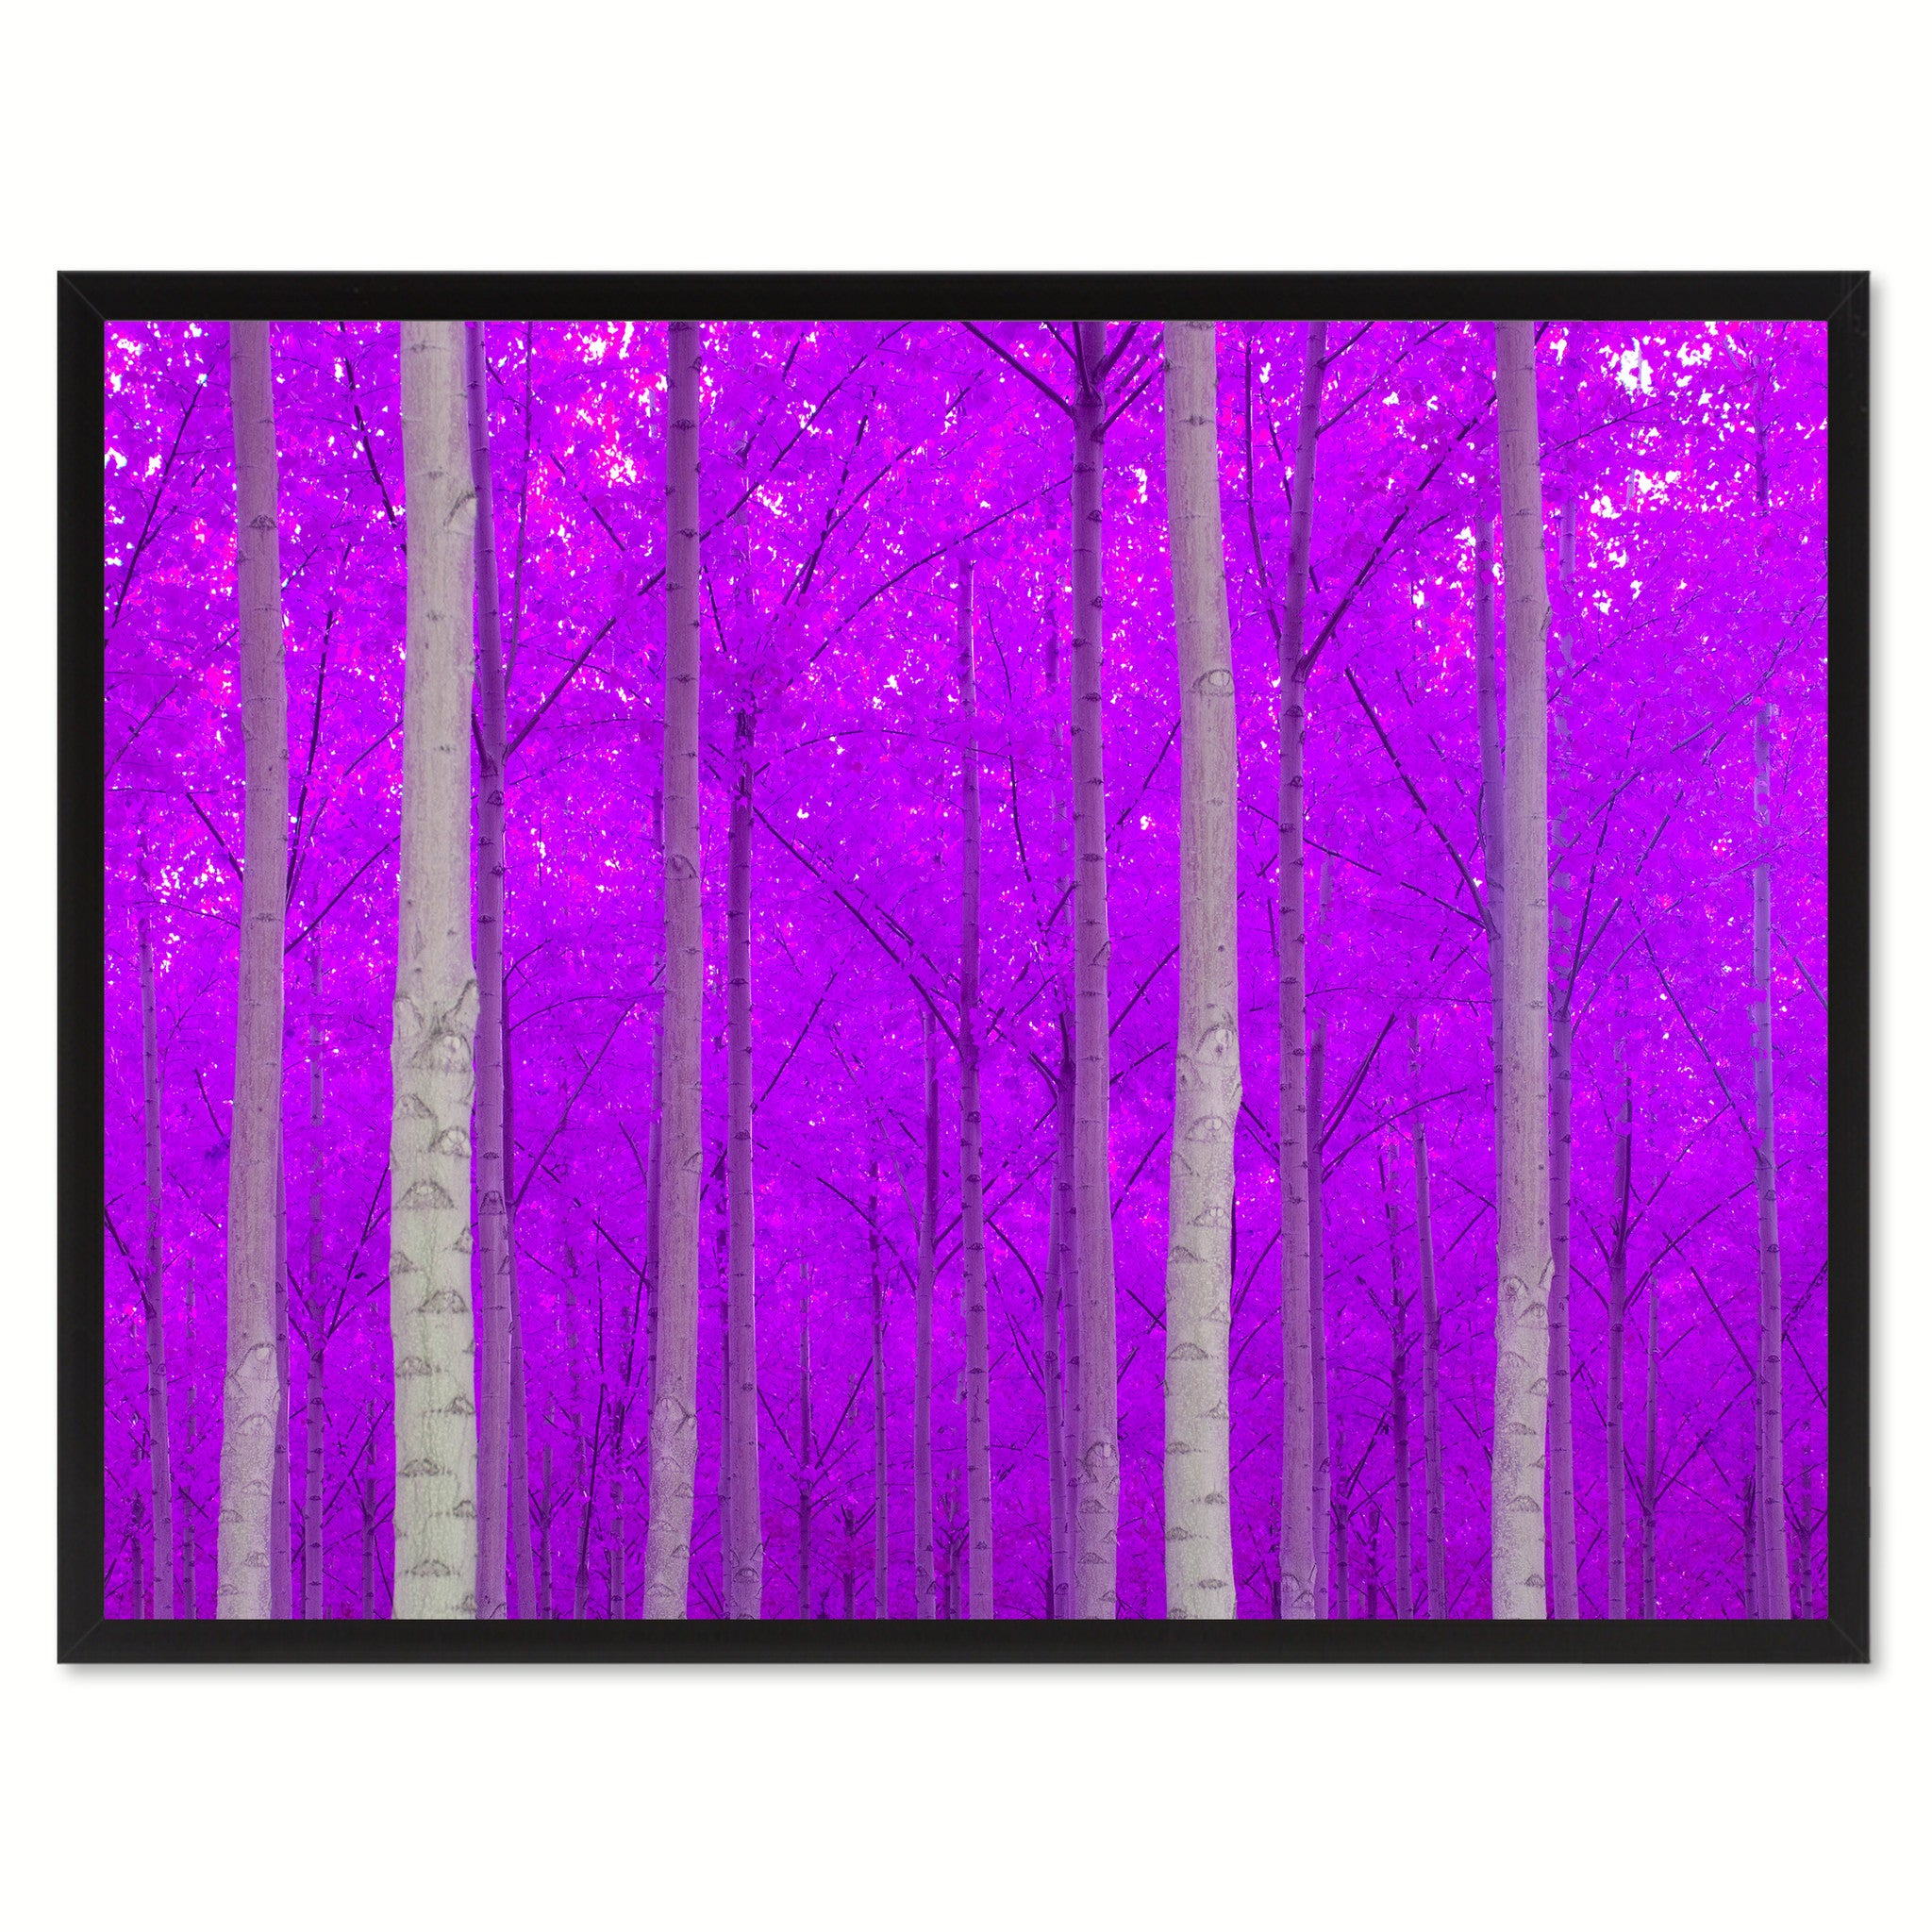 Autumn Tree Purple Landscape Photo Canvas Print Pictures Frames Home Décor Wall Art Gifts